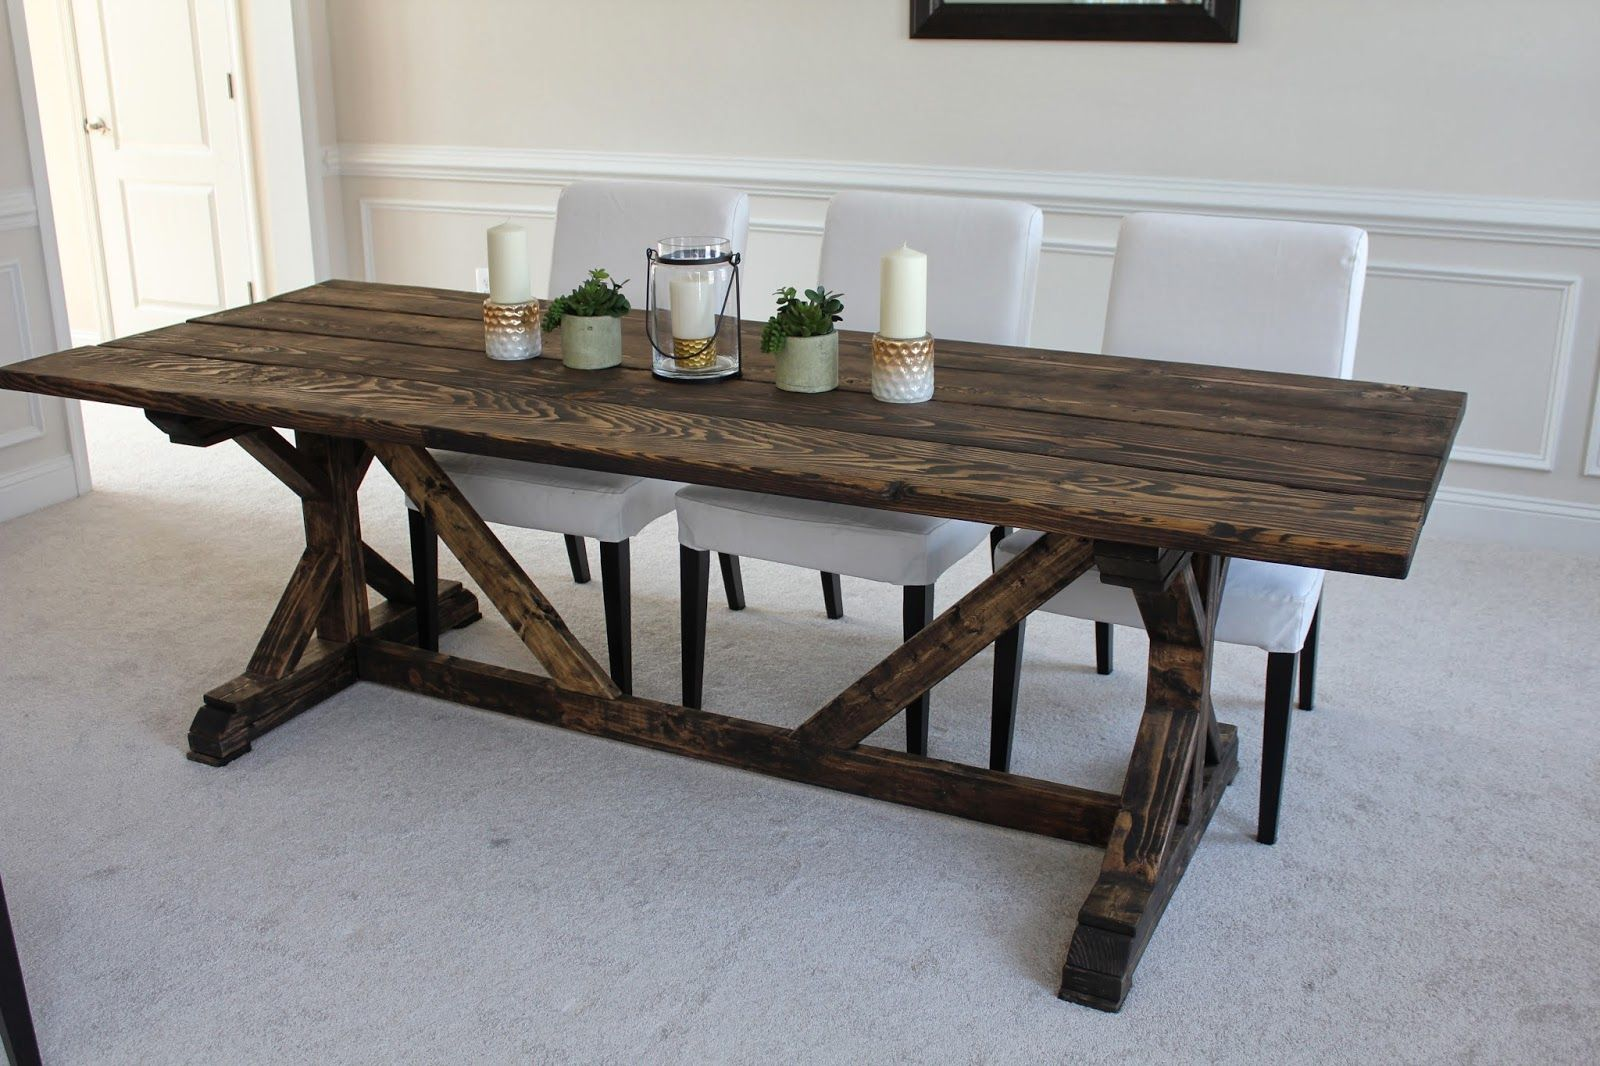 wooden farmhouse table plans diy blueprints farmhouse table plans